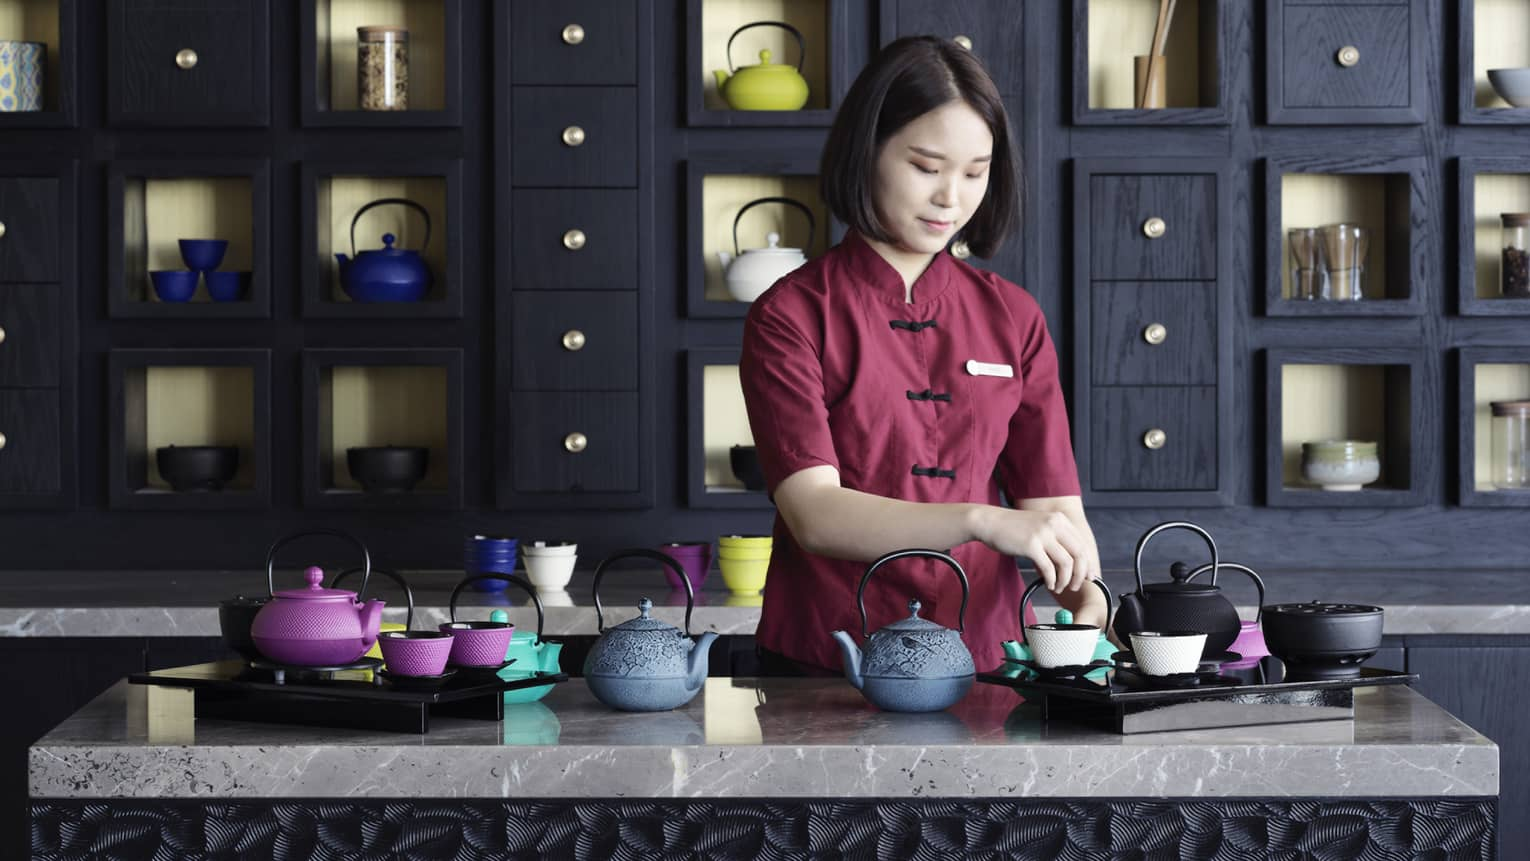 Woman in burgundy uniform prepares colourful iron teapots on marble counter